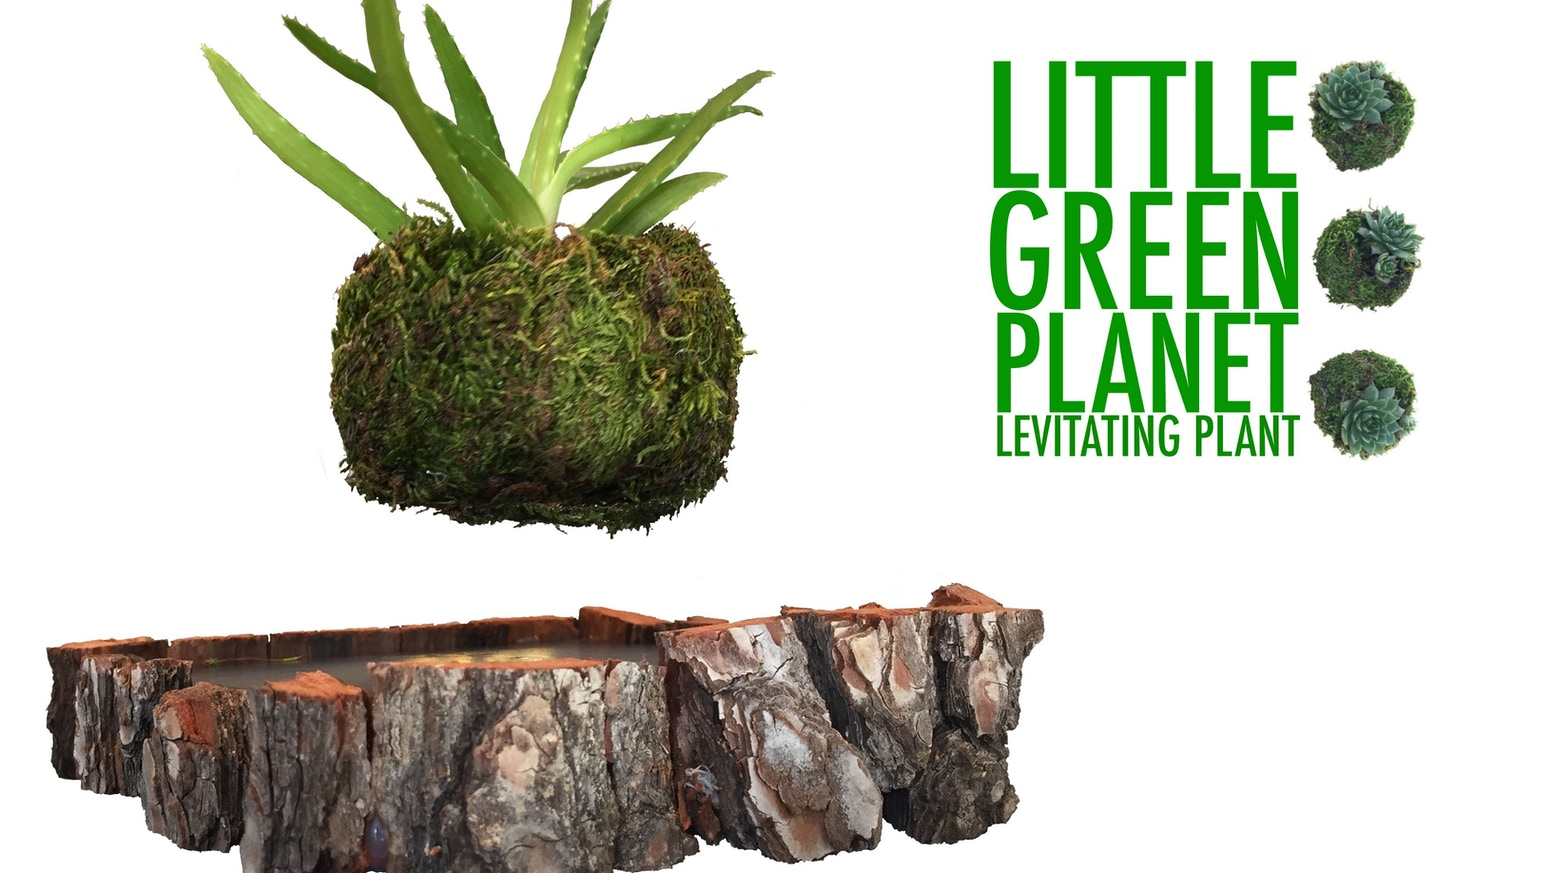 Grow your very own Little Green Plant, on a magical levitating moss planet right on your desk! Cactus? Bonsai? Bamboo? It's up to you!